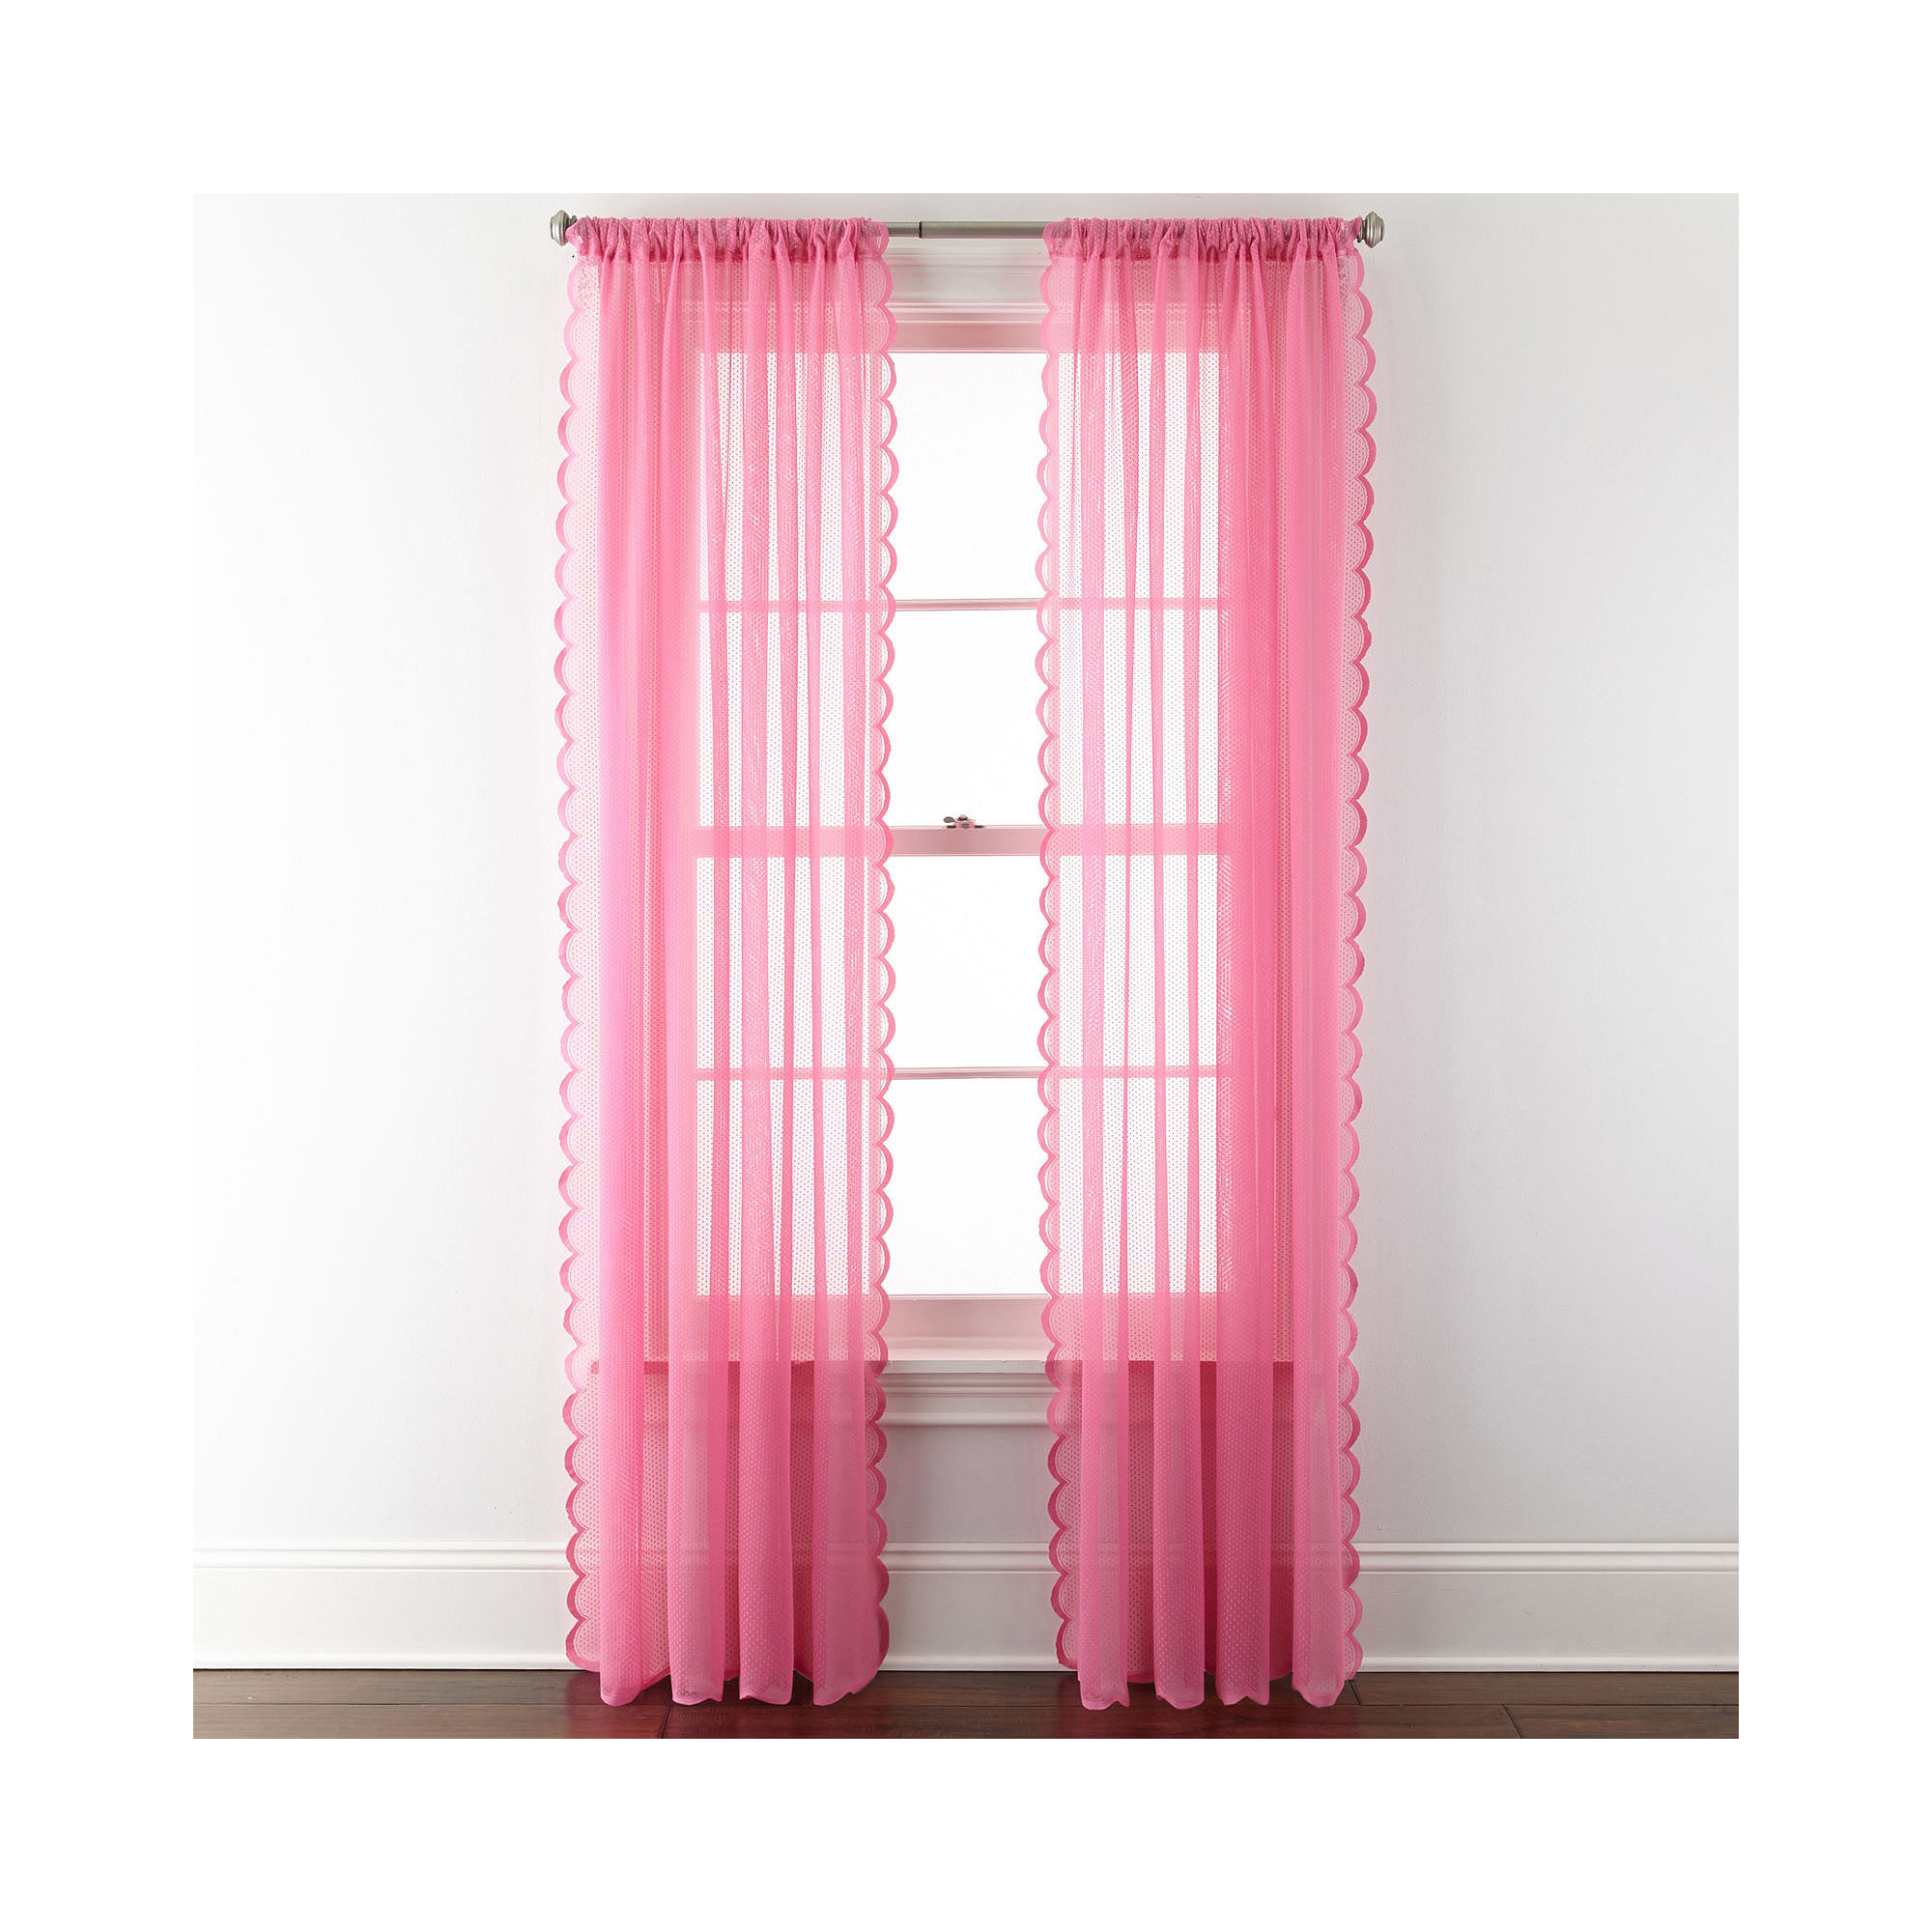 room dark fades as ombr top pattern light adding ombre interest dylan in panels curtain the eye and grommet draws visual lights this curtains pin from panel to studio window plenty of